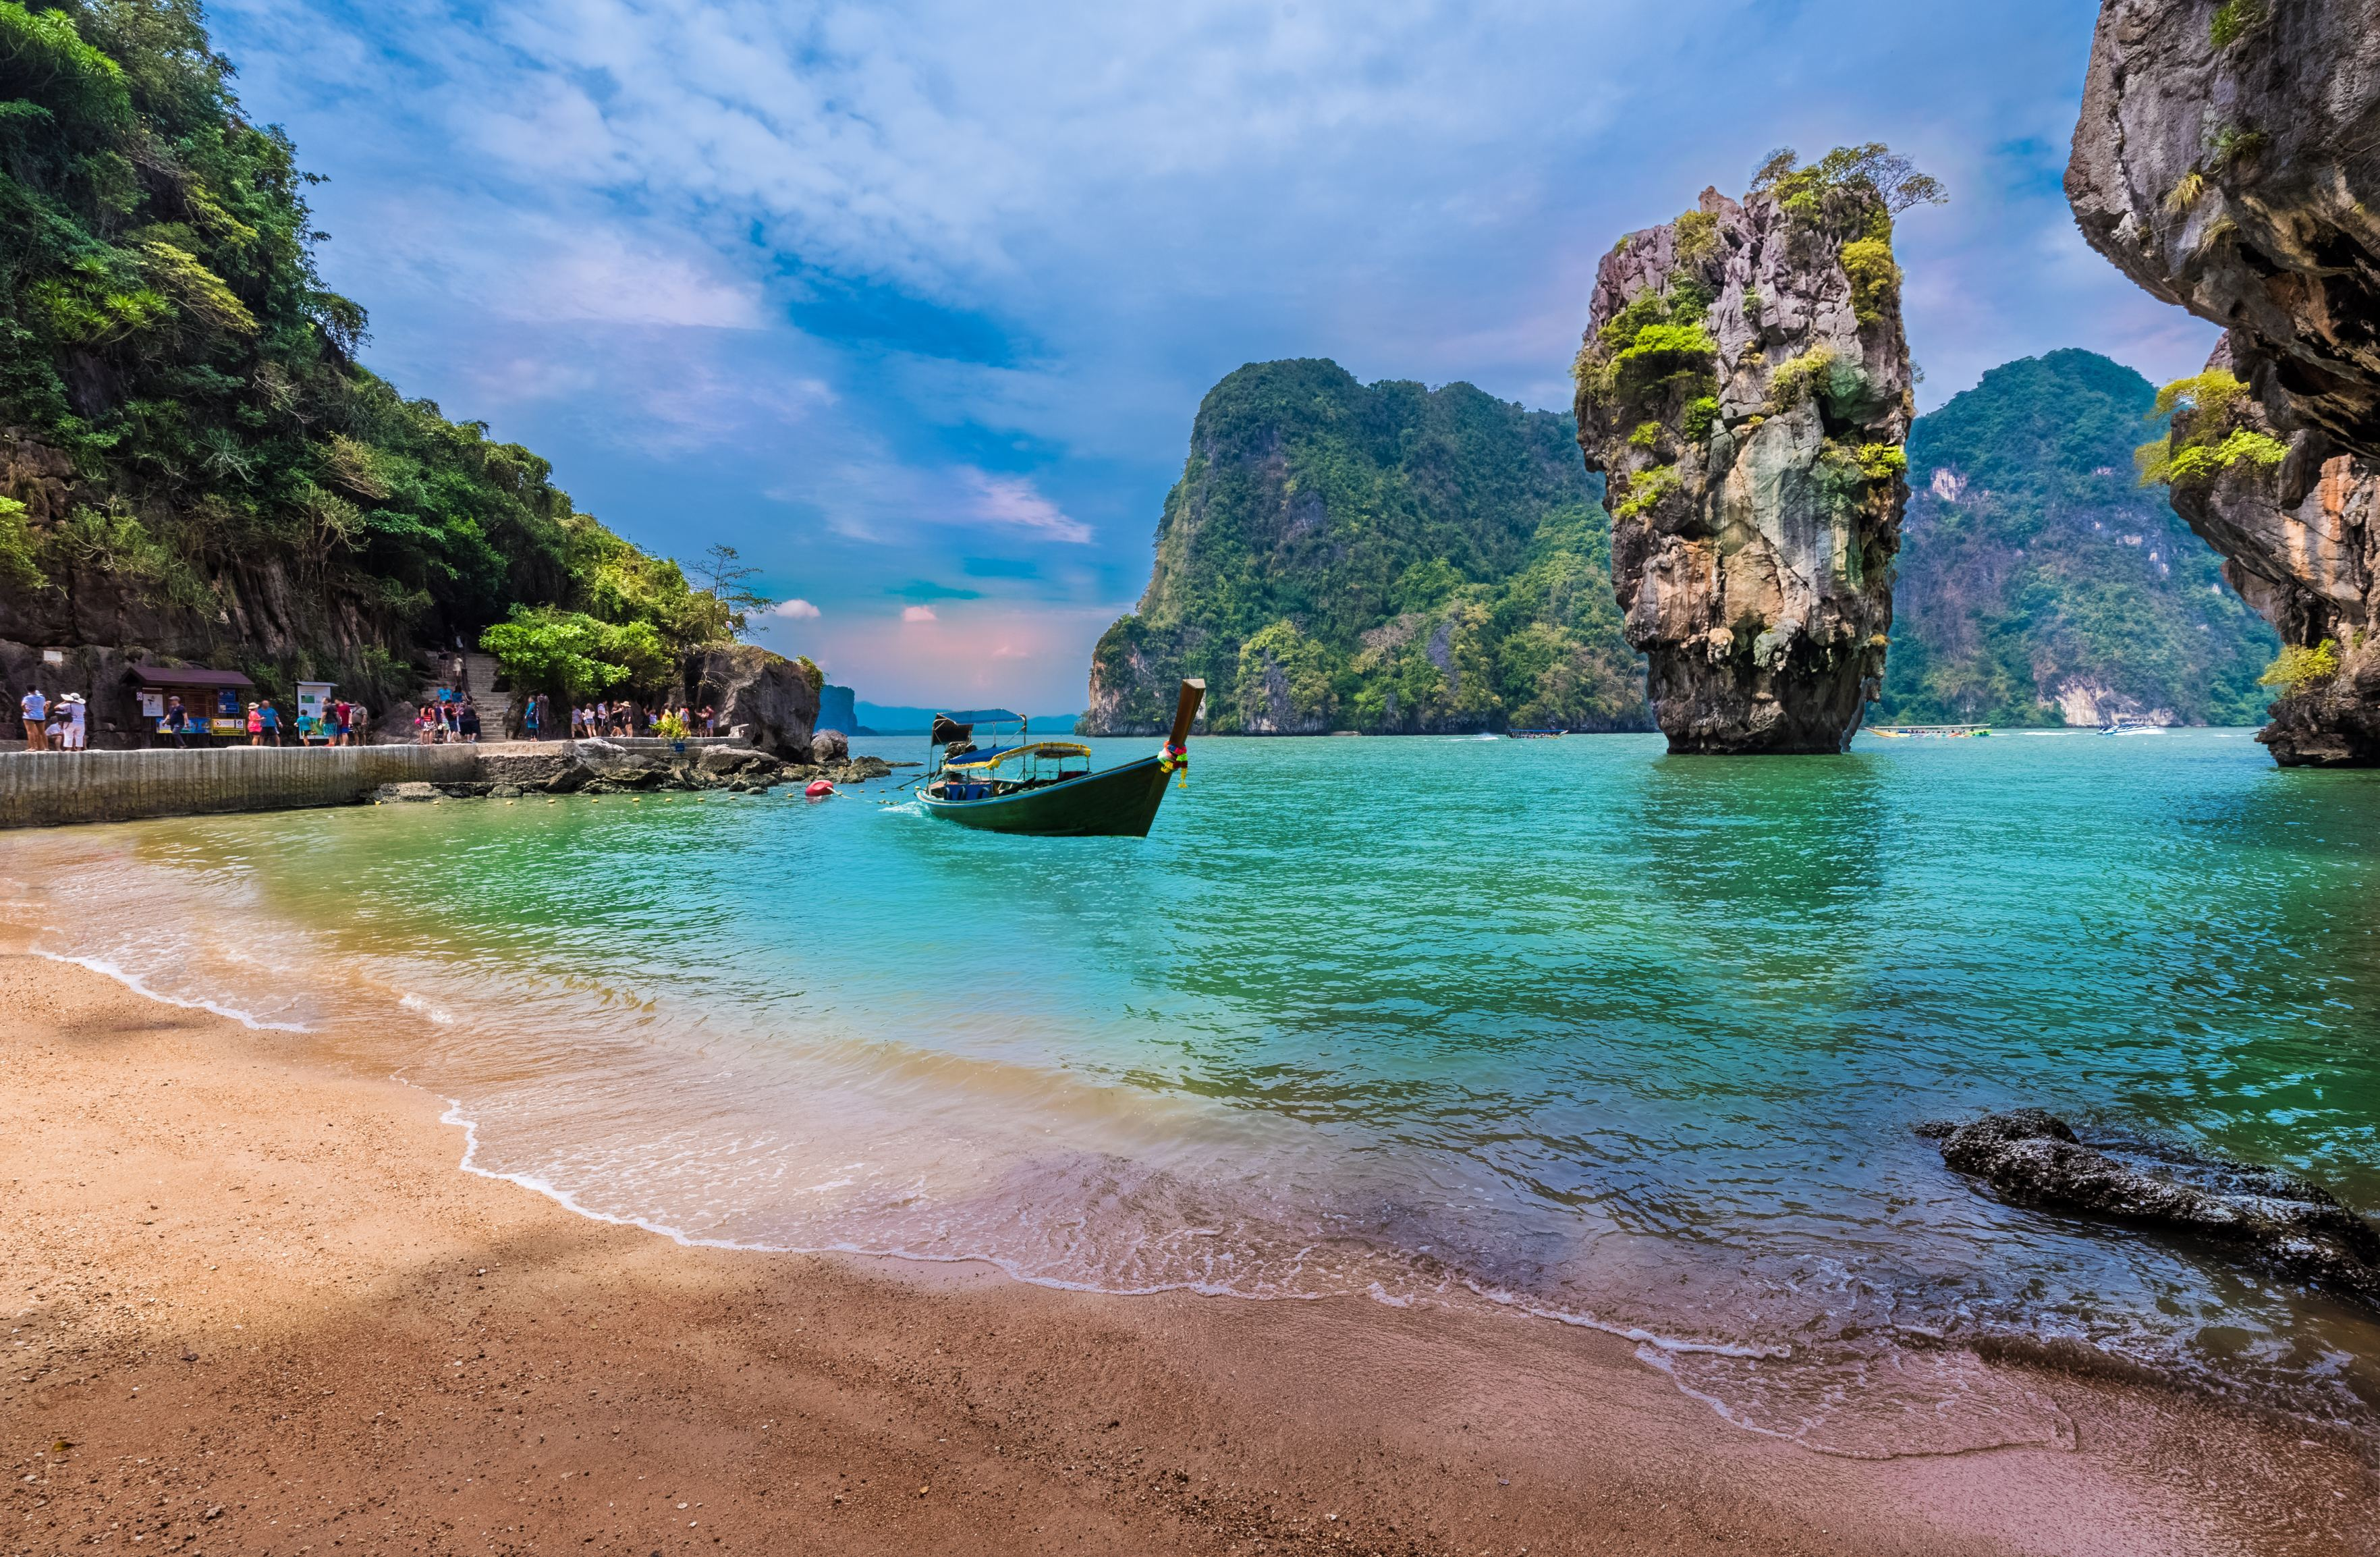 James Bond island and famous Khao Phing Kan stone in Thailand